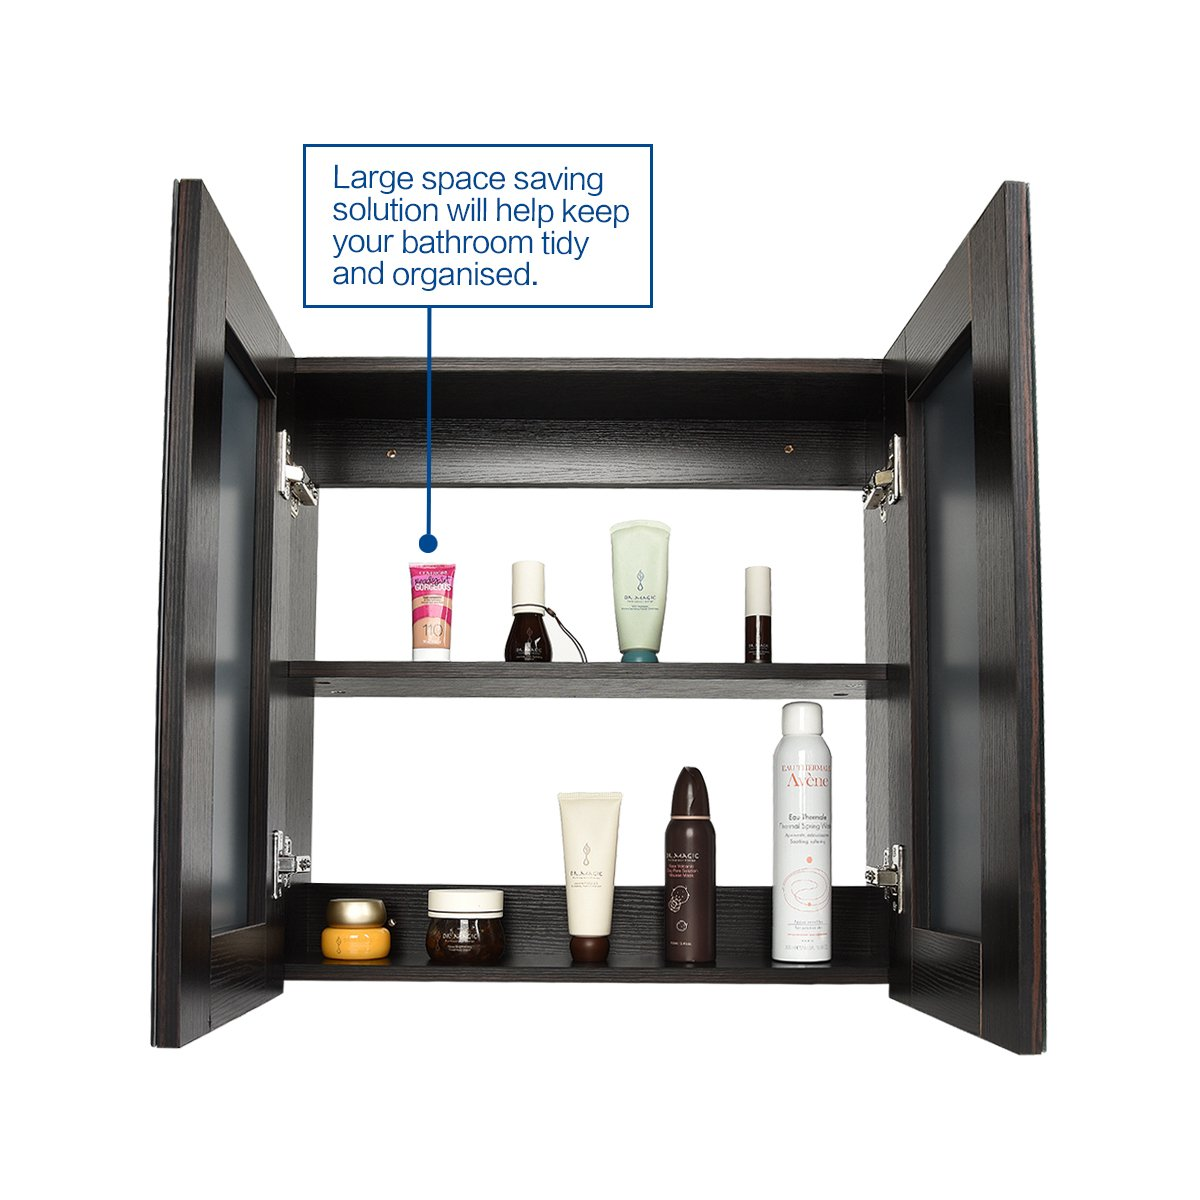 "Elecwish 24"" Wide Wall Mount Mirrored Bathroom Medicine Cabinet Storage 2 Mirror Door (23.6"" 23.6"" 6.3"")"